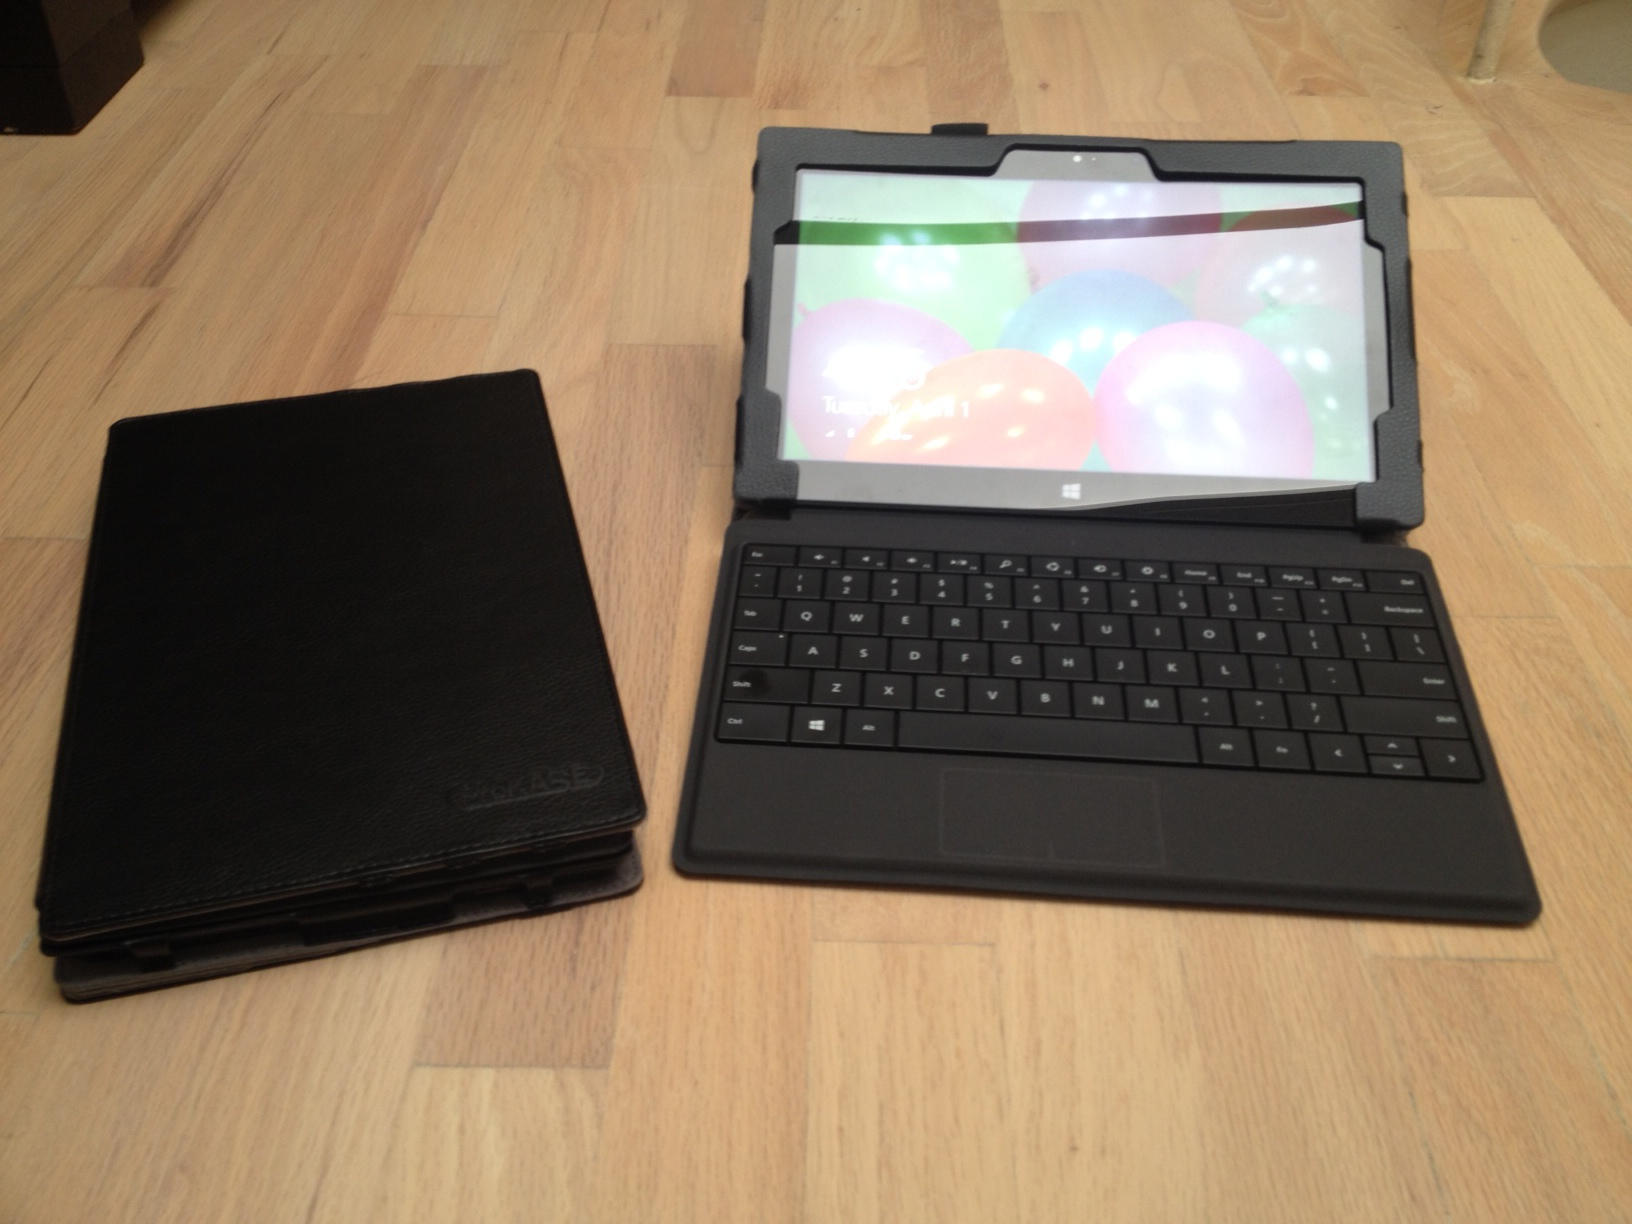 With the keyboard cover attached, the Surface Pro screen can be angled much lower than with the kickstand.